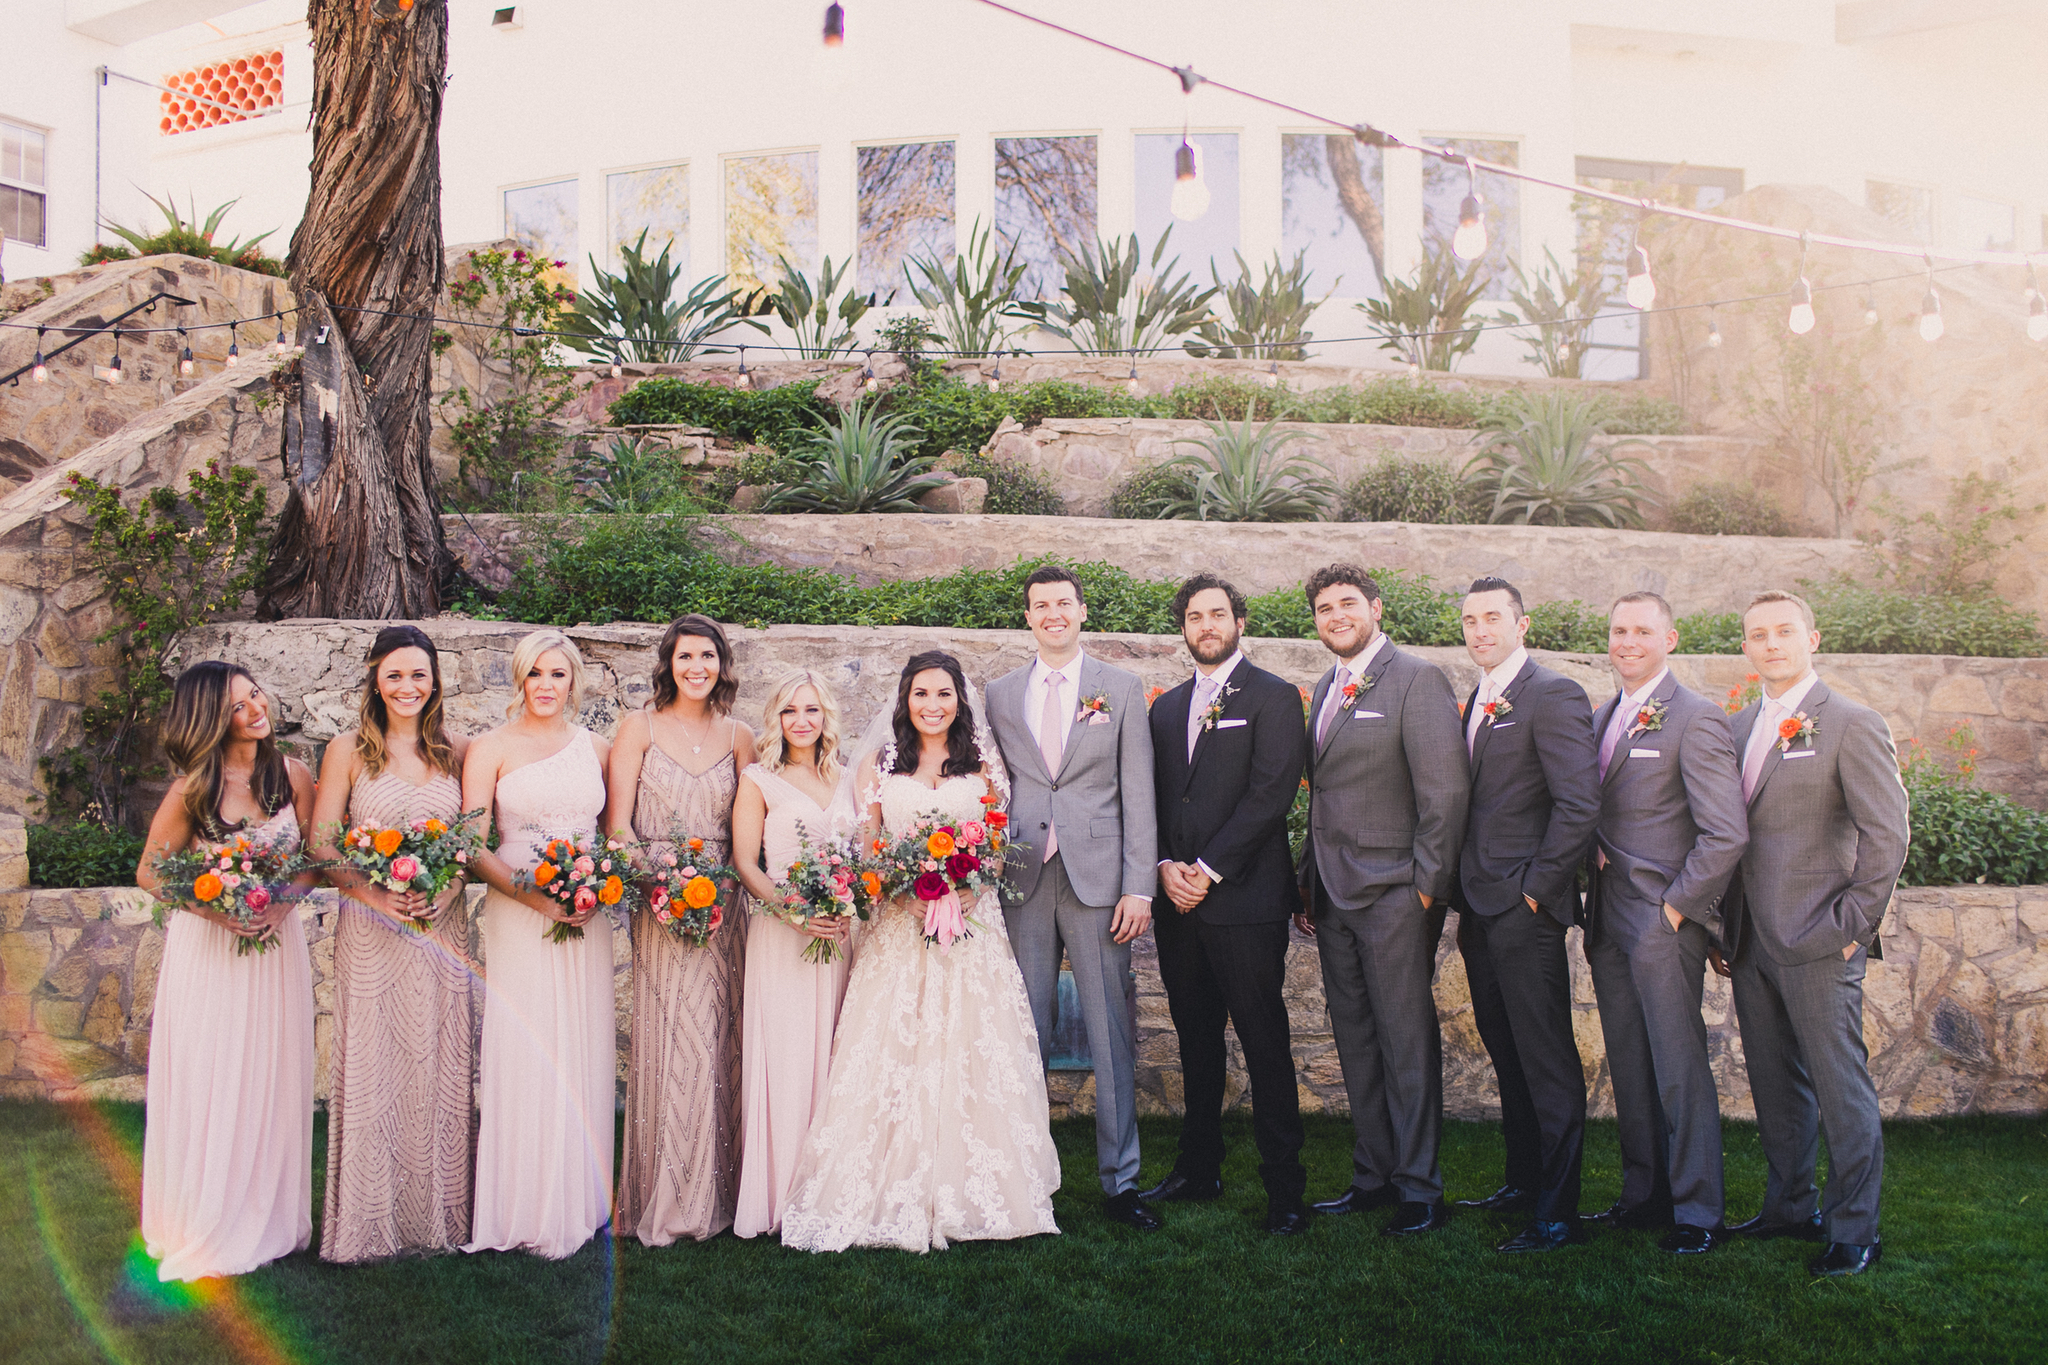 Colorful Springtime Wedding at Wrigley Mansion - Bridal Party Inspo